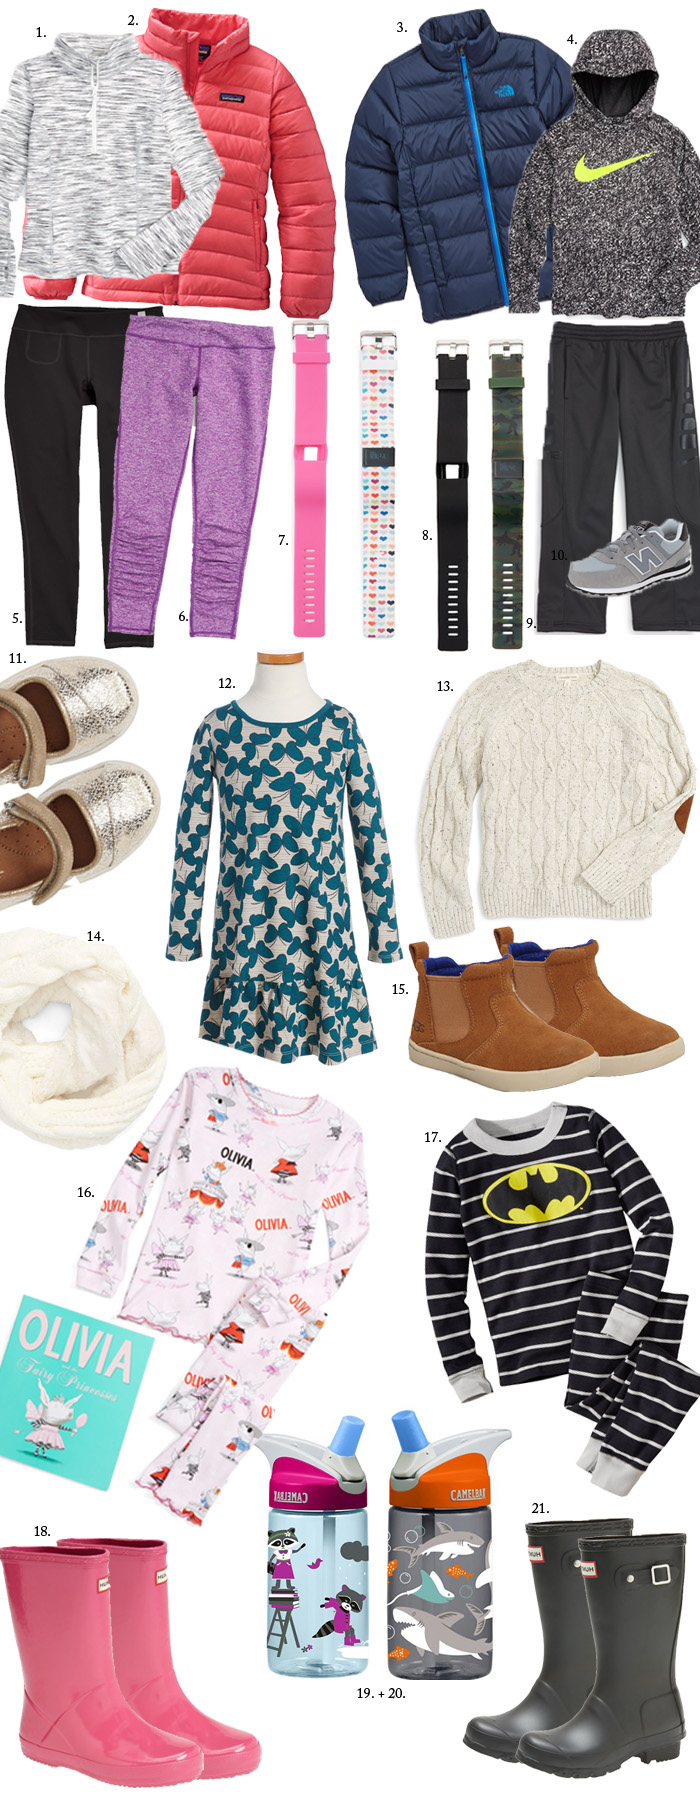 A Holiday Gift Guide with Practical Gifts for Kids